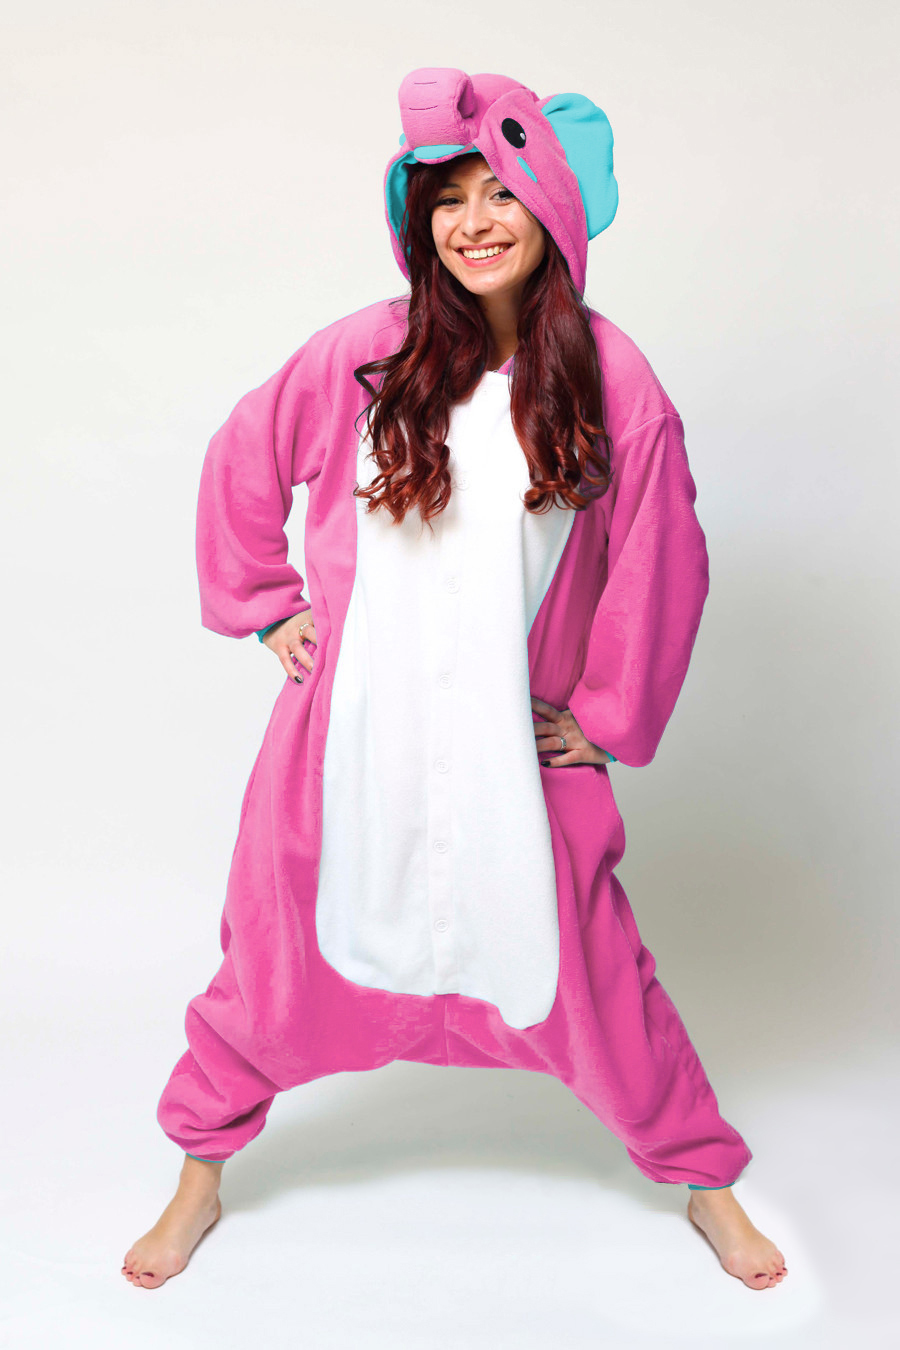 10a3ad322e28 Buy your Pink Elephant kids onesie now! - PartyinyourAnimal.com